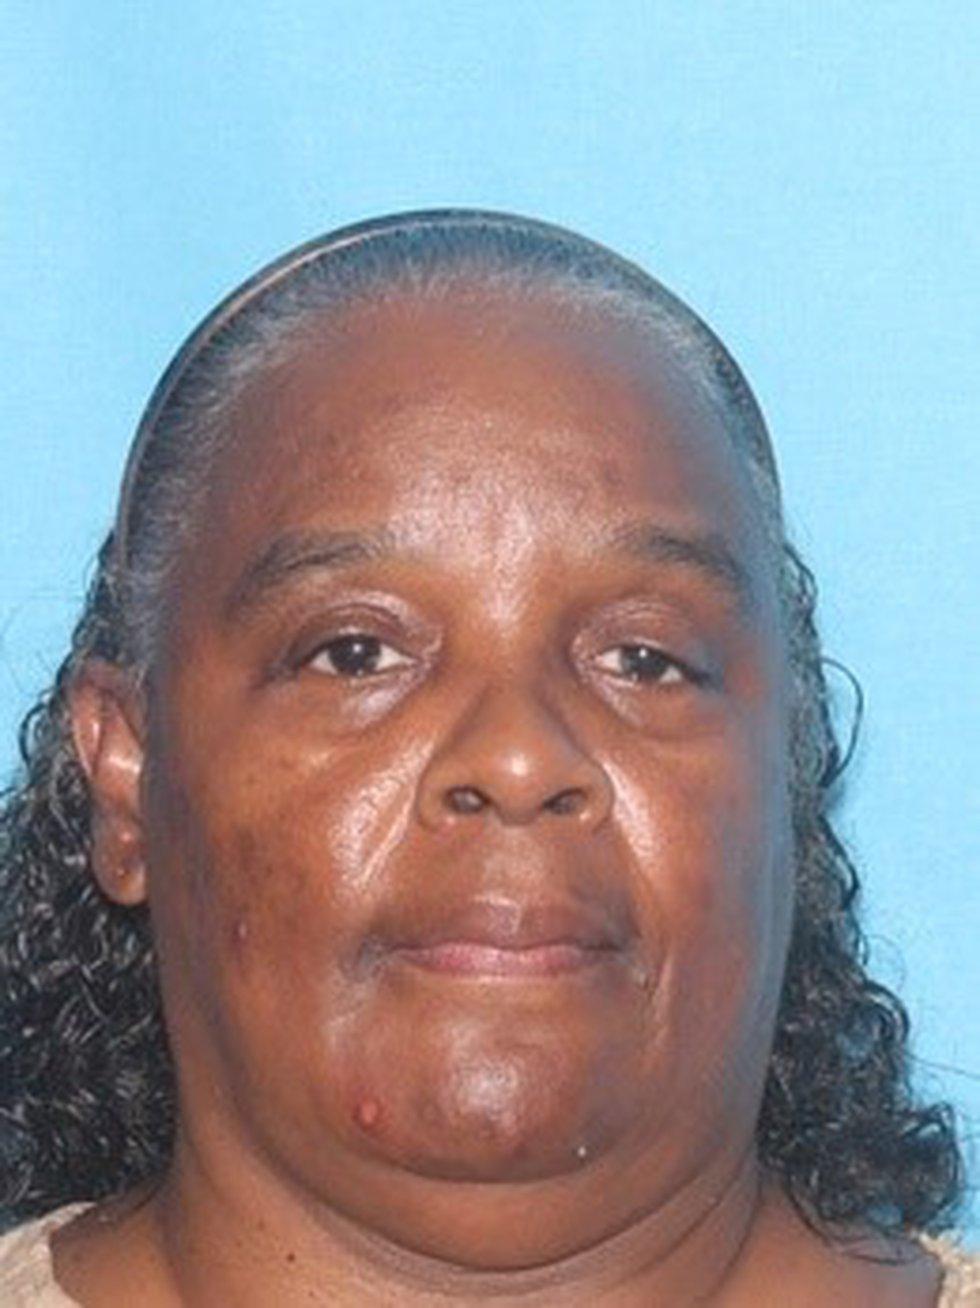 The Gulfport Police Department is asking for help locating a missing Gulfport woman.